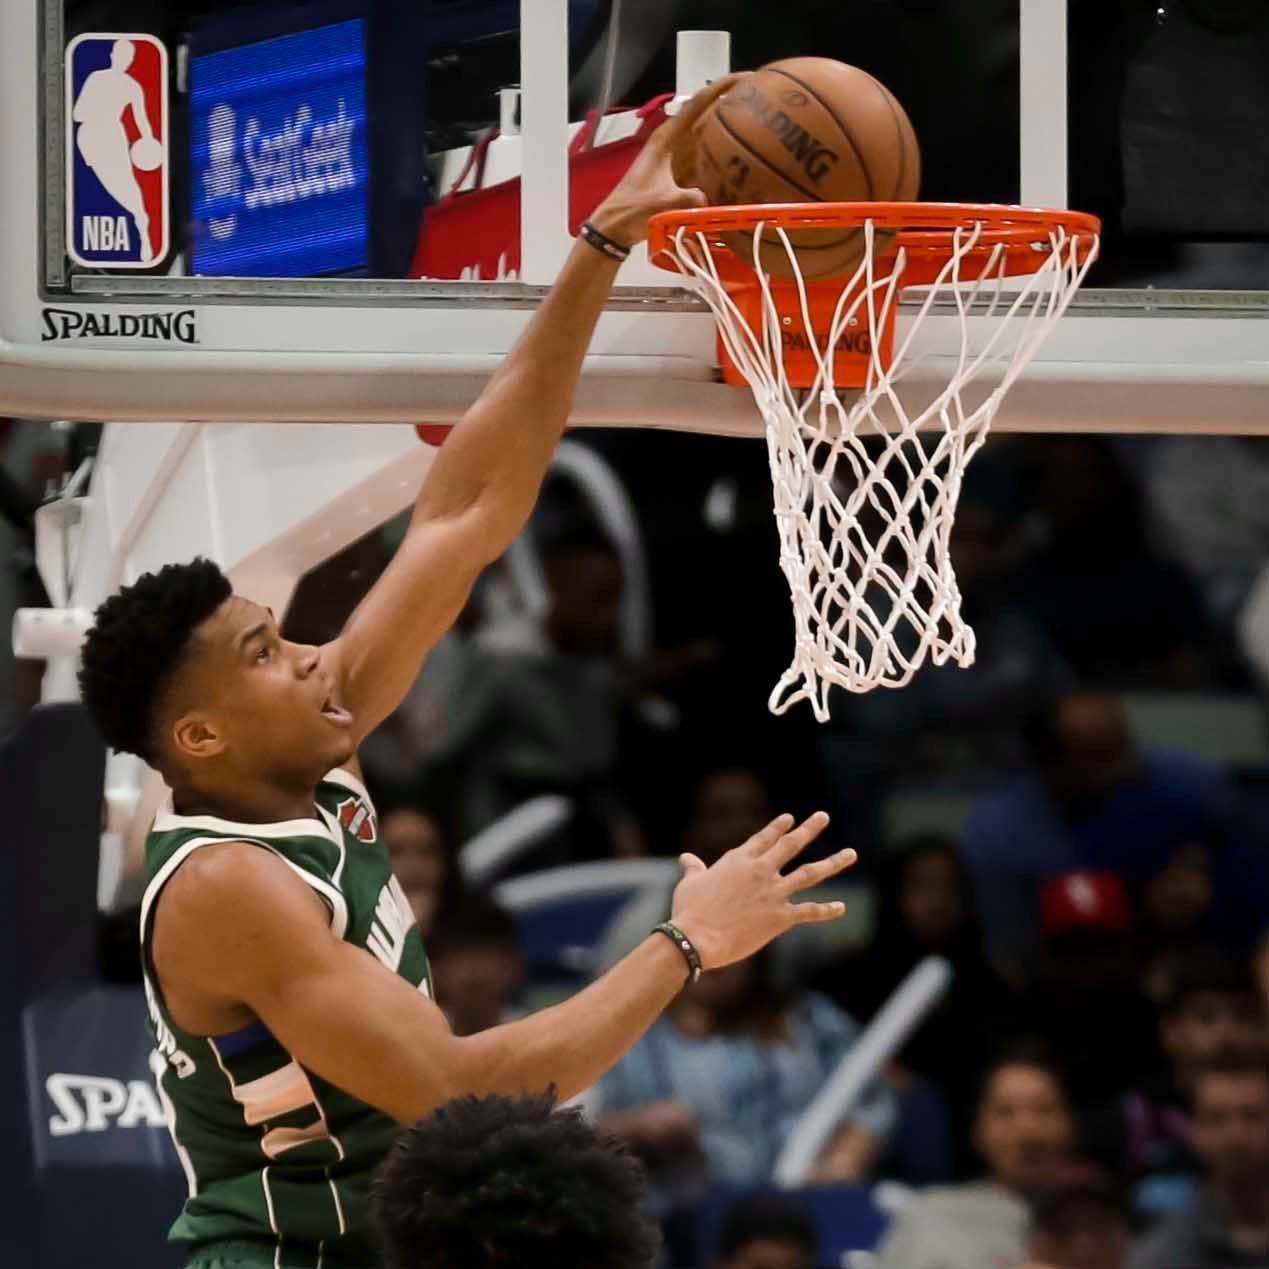 Bucks 130, Pelicans 113: Third-quarter fireworks are dazzling